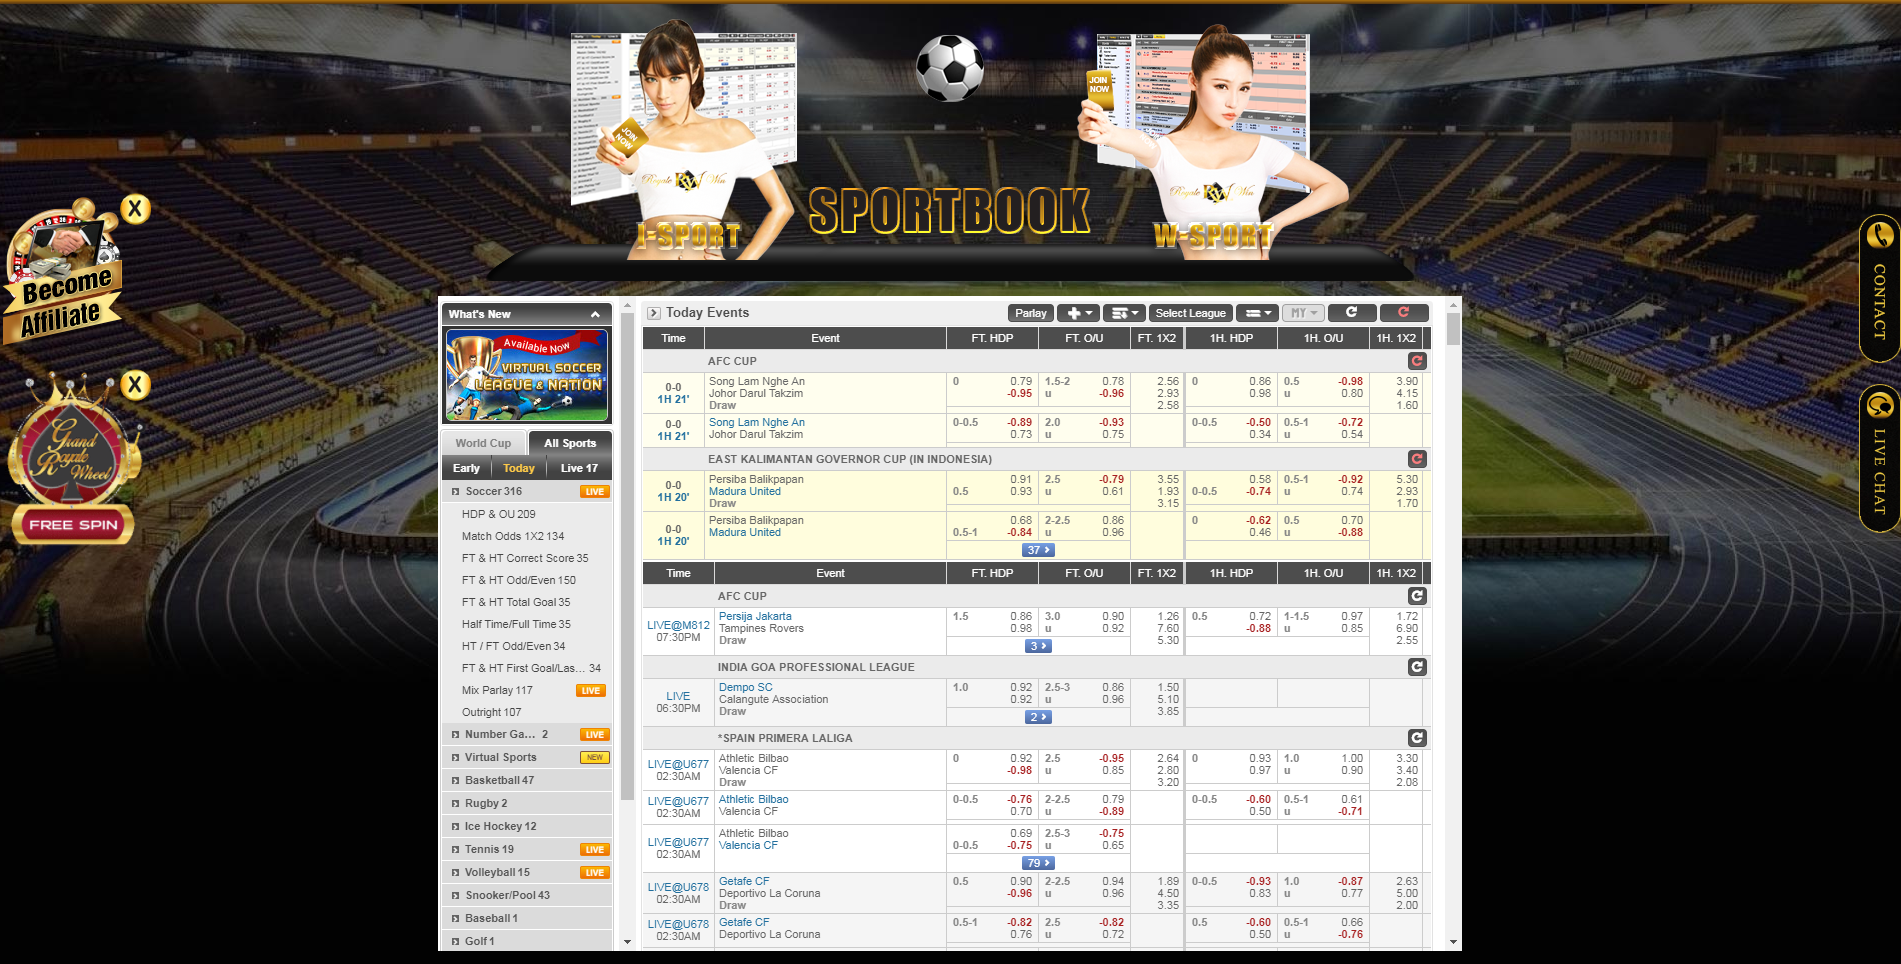 Online soccer betting odds sports betting in new jersey lawsuit reform